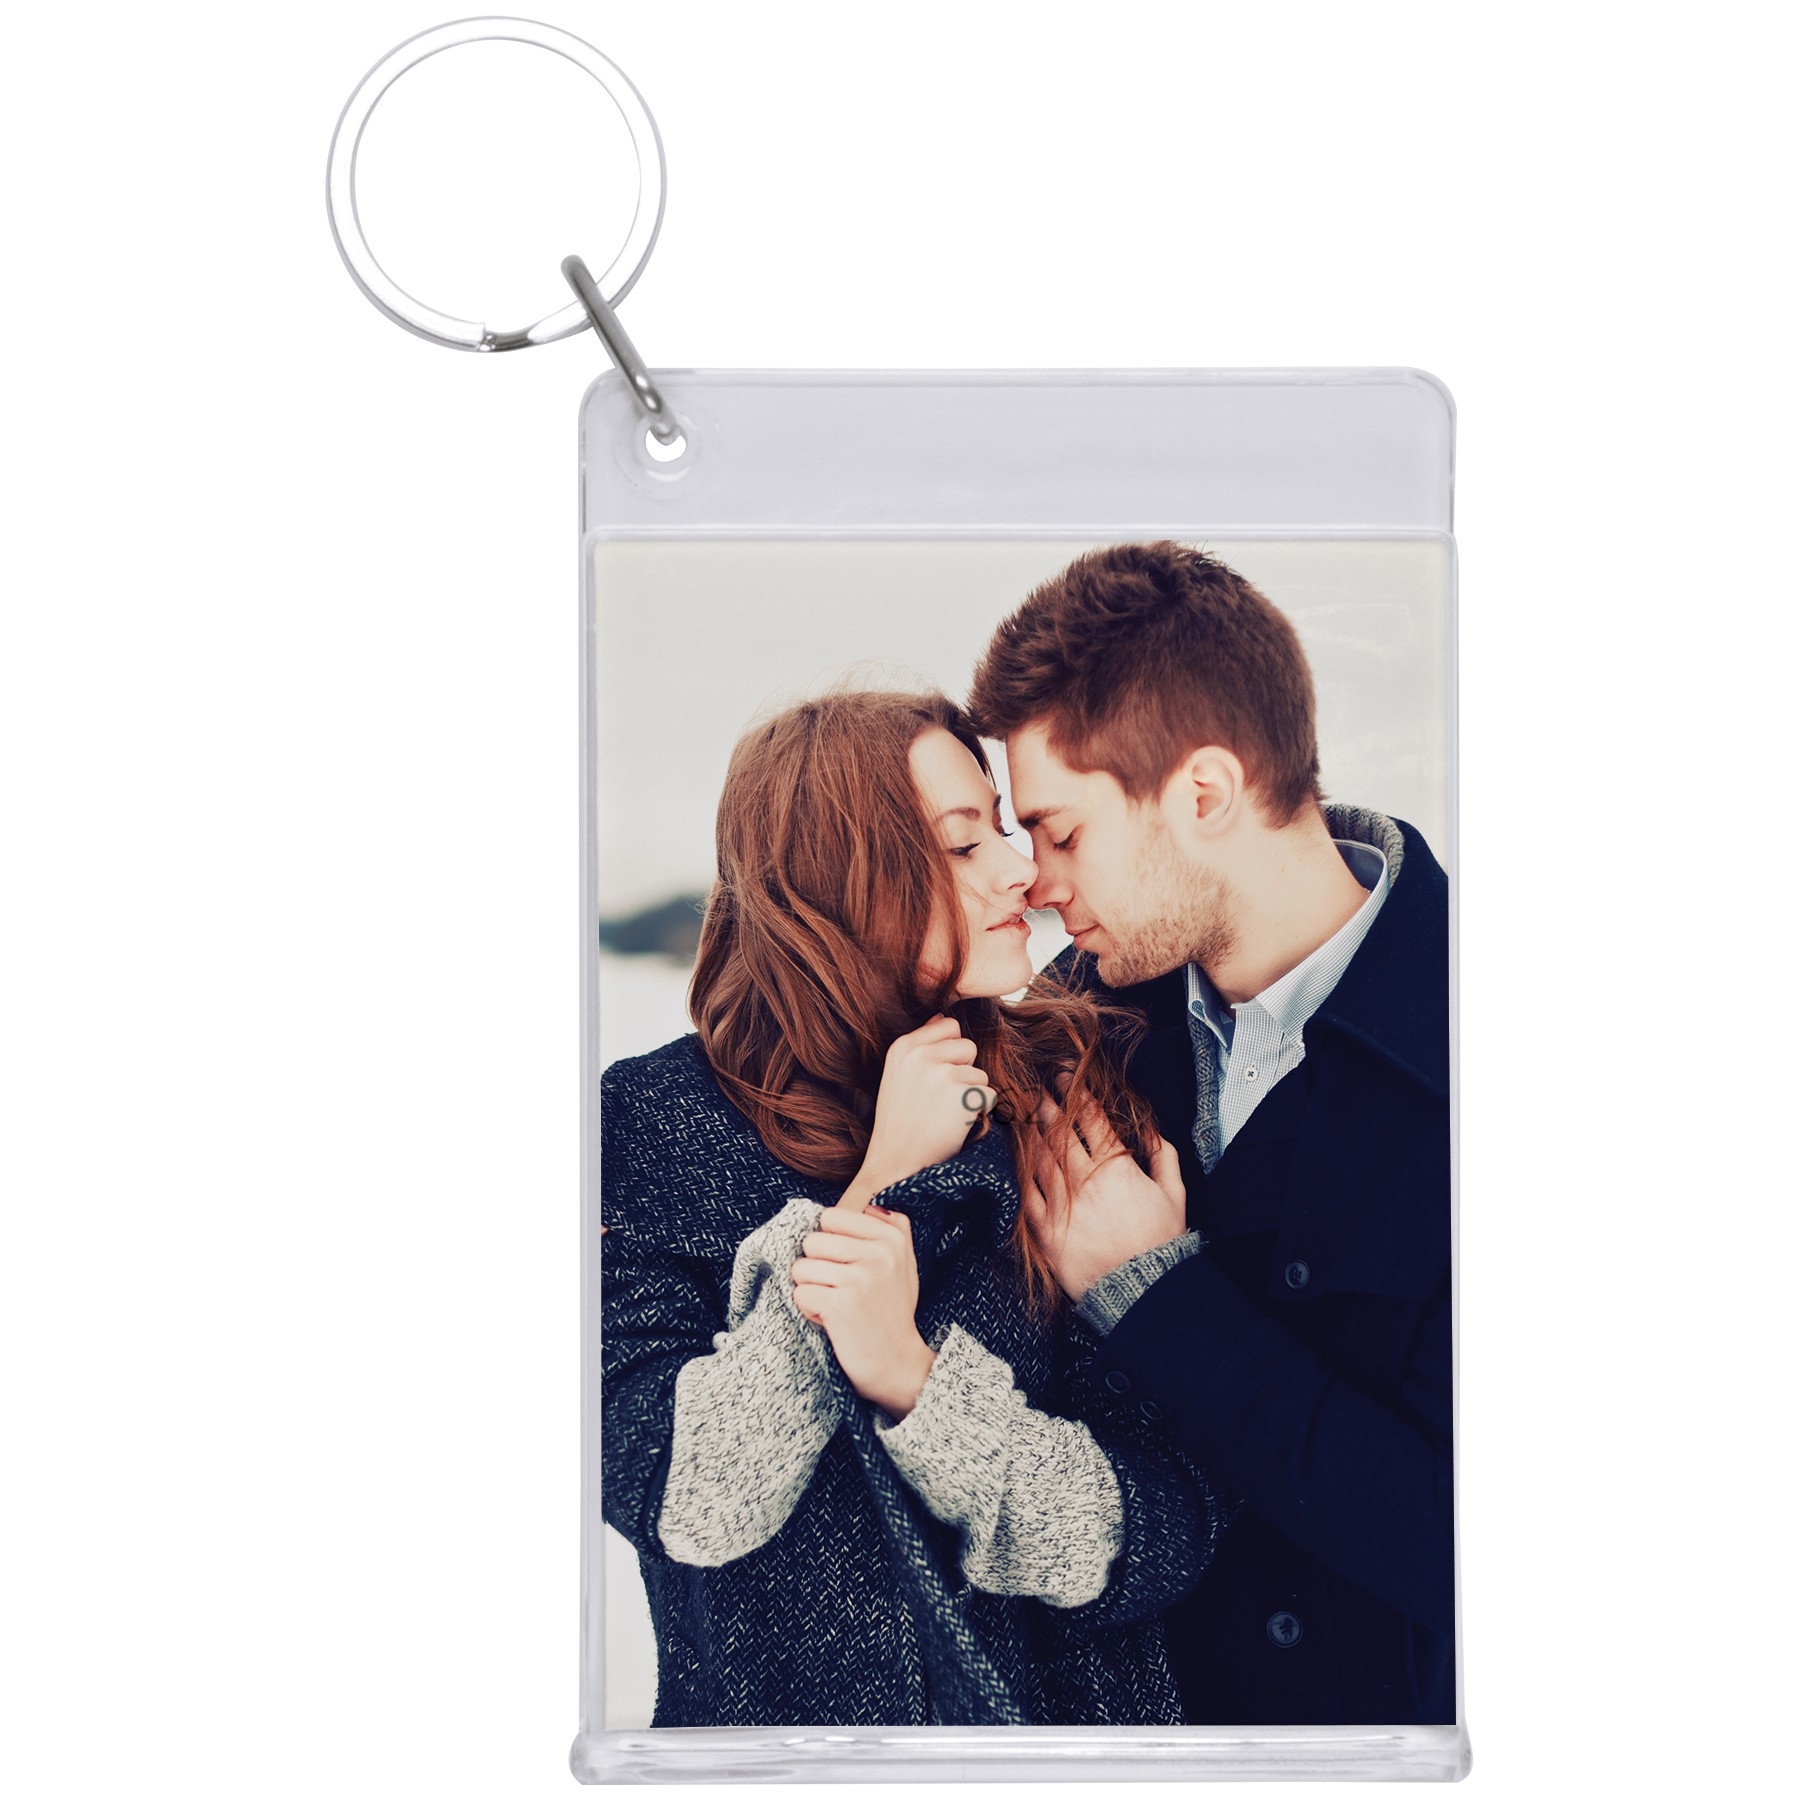 Standard Slip-in Photo Keychains